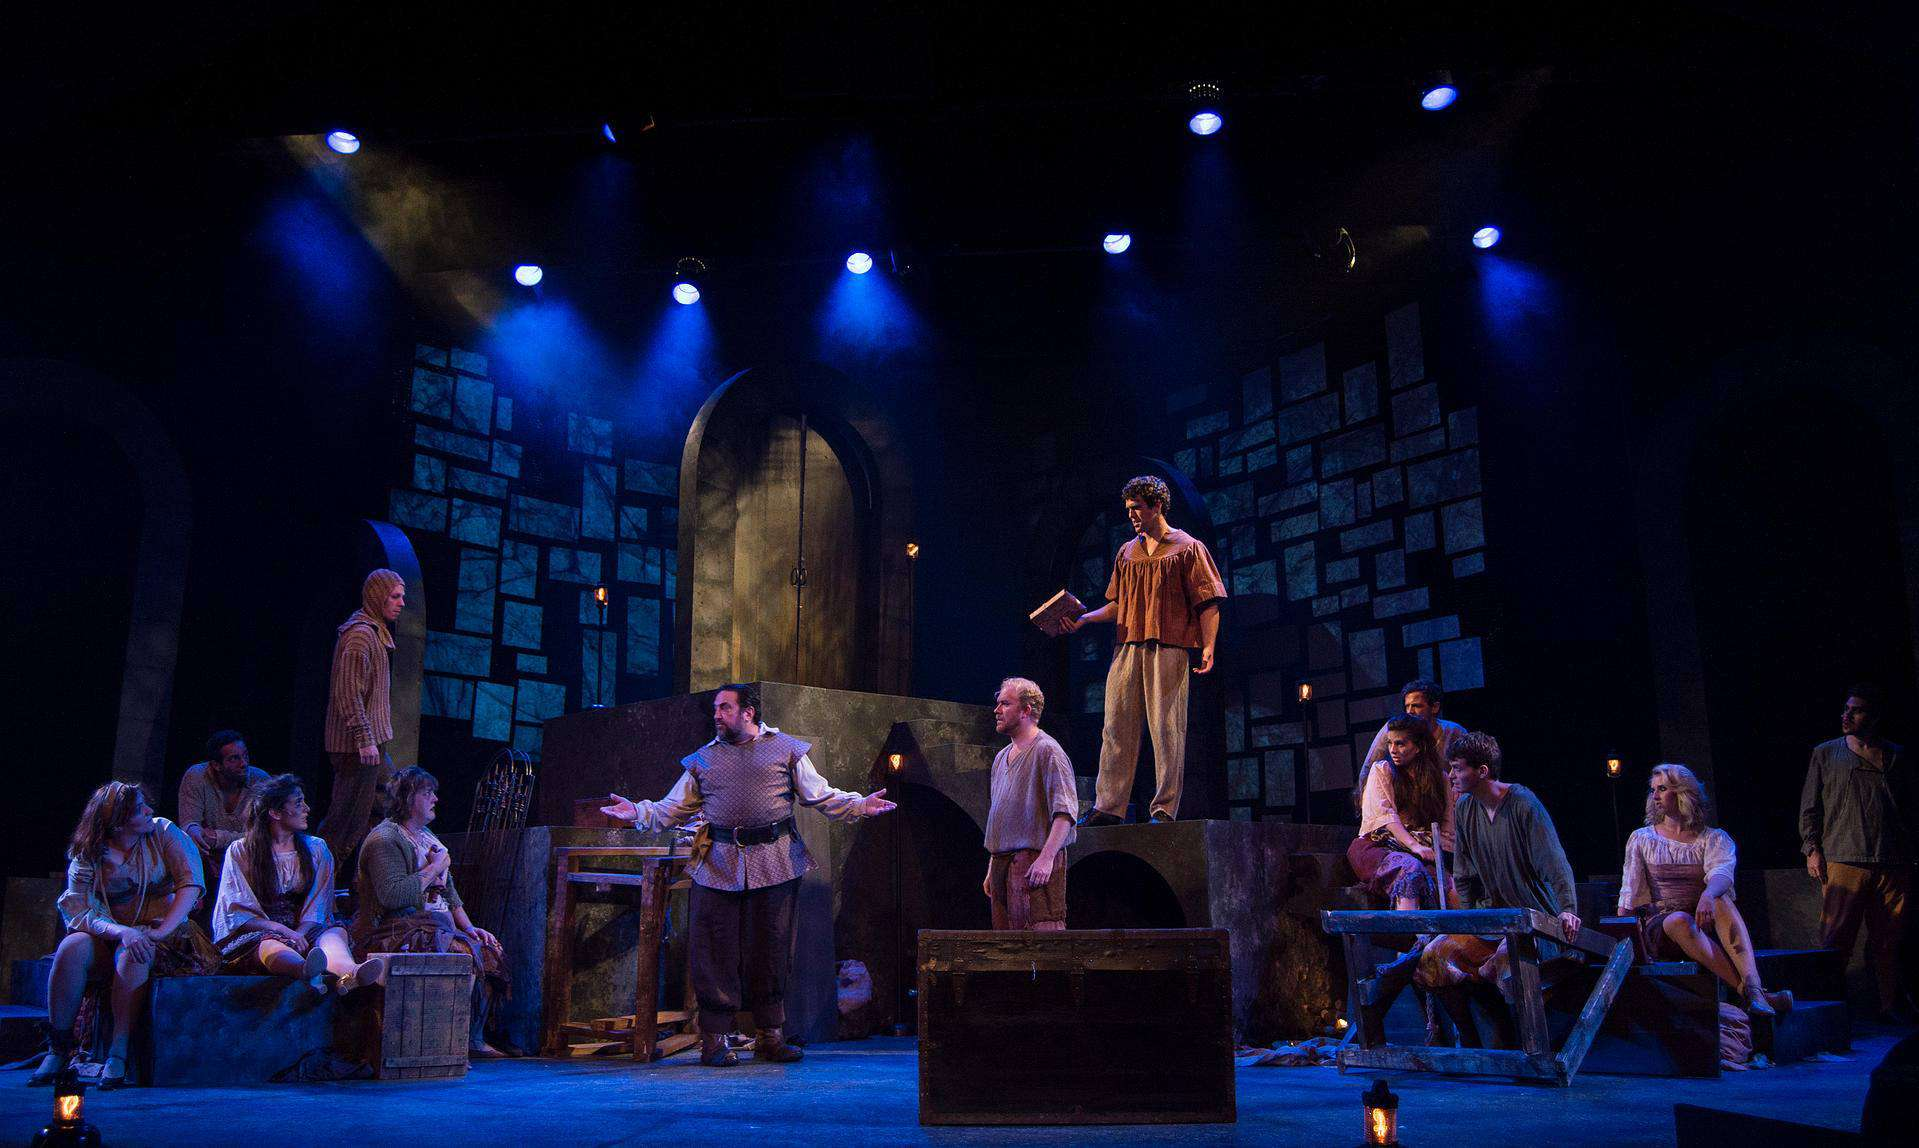 Man of La Mancha. Jean's Playhouse. Stone texture was projected onto the floating bricks in the air. The texture varied scene to scene, and often became something else entirely.